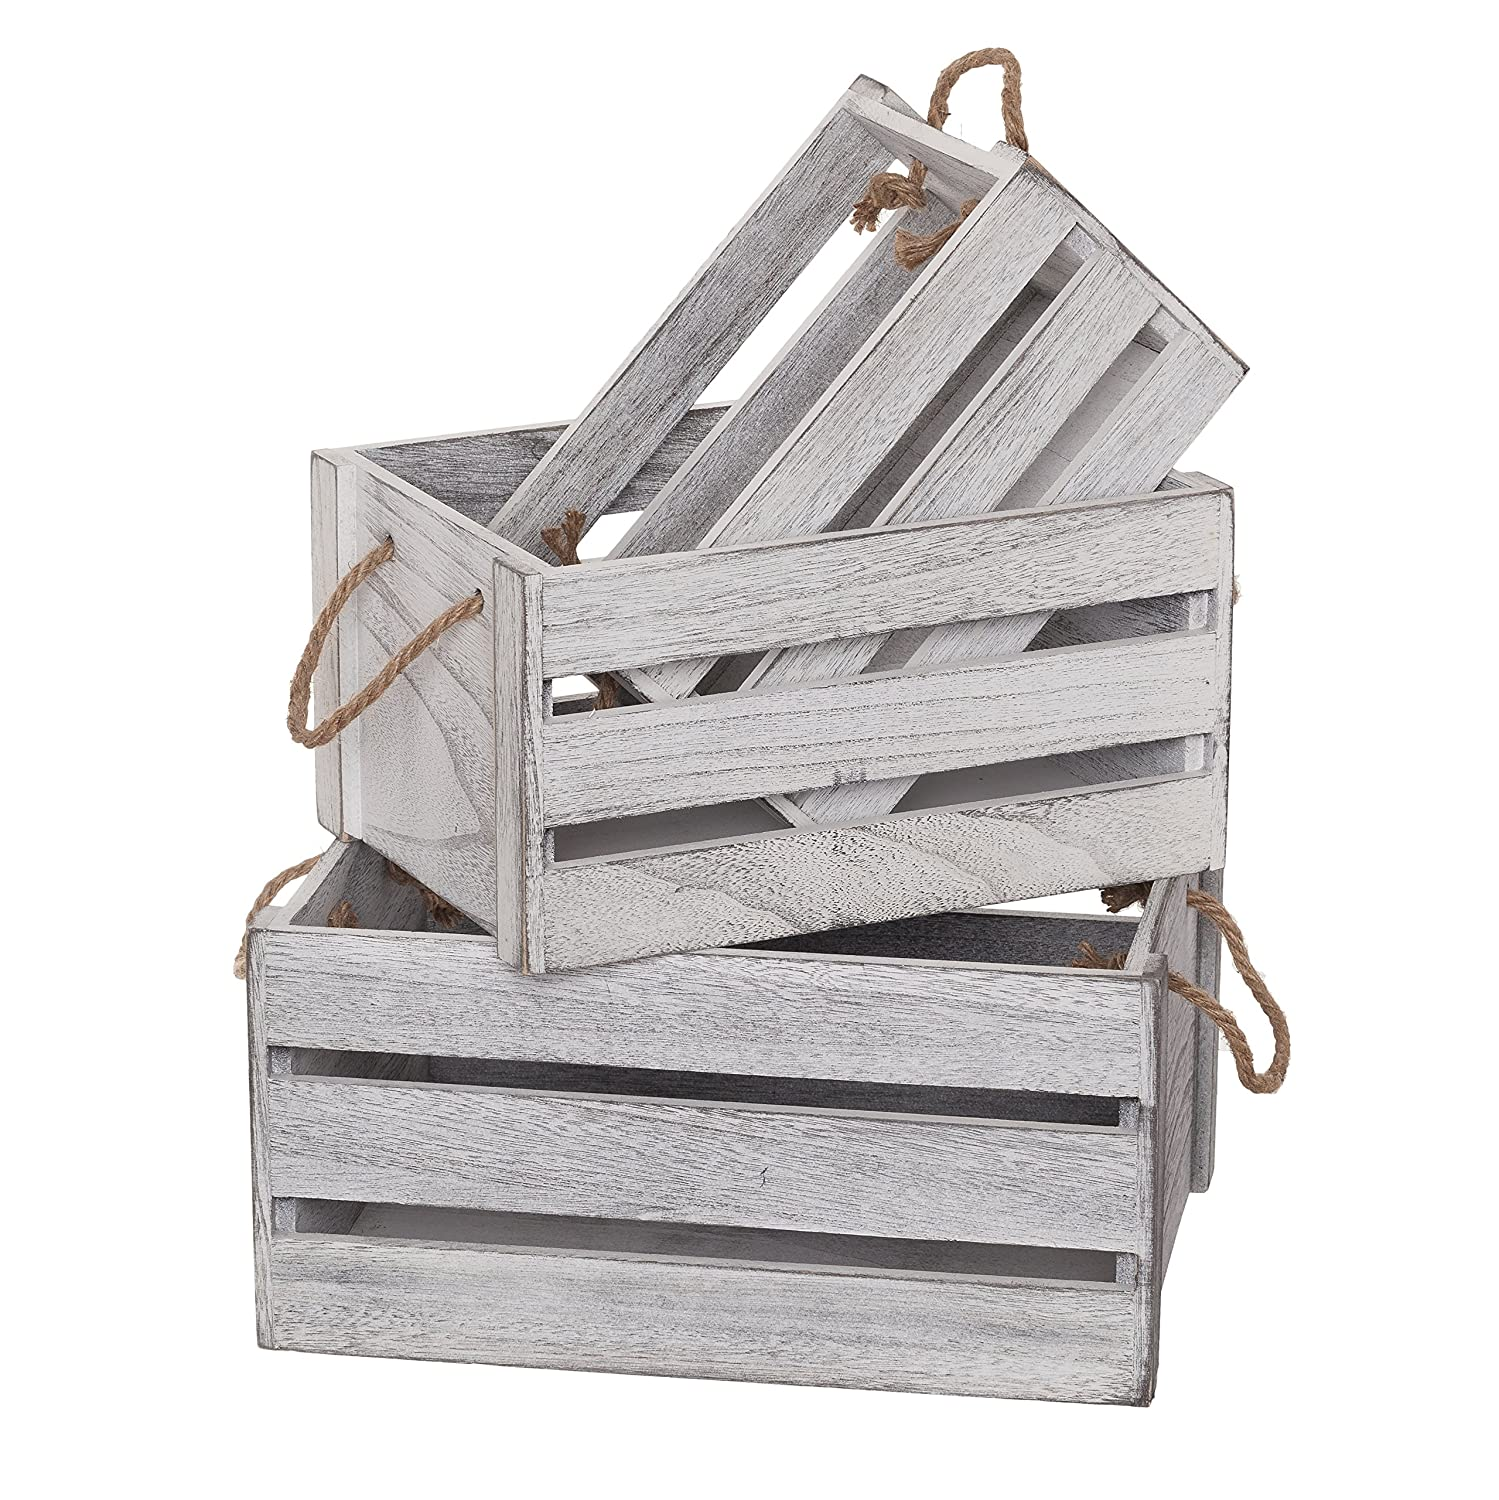 SLPR Decorative Storage Wooden Crates (Set of 3, Rope Handles) | Perfect for Floral Arrangements Gardening Wedding Vintage Country Chic Rustic Distressed Style